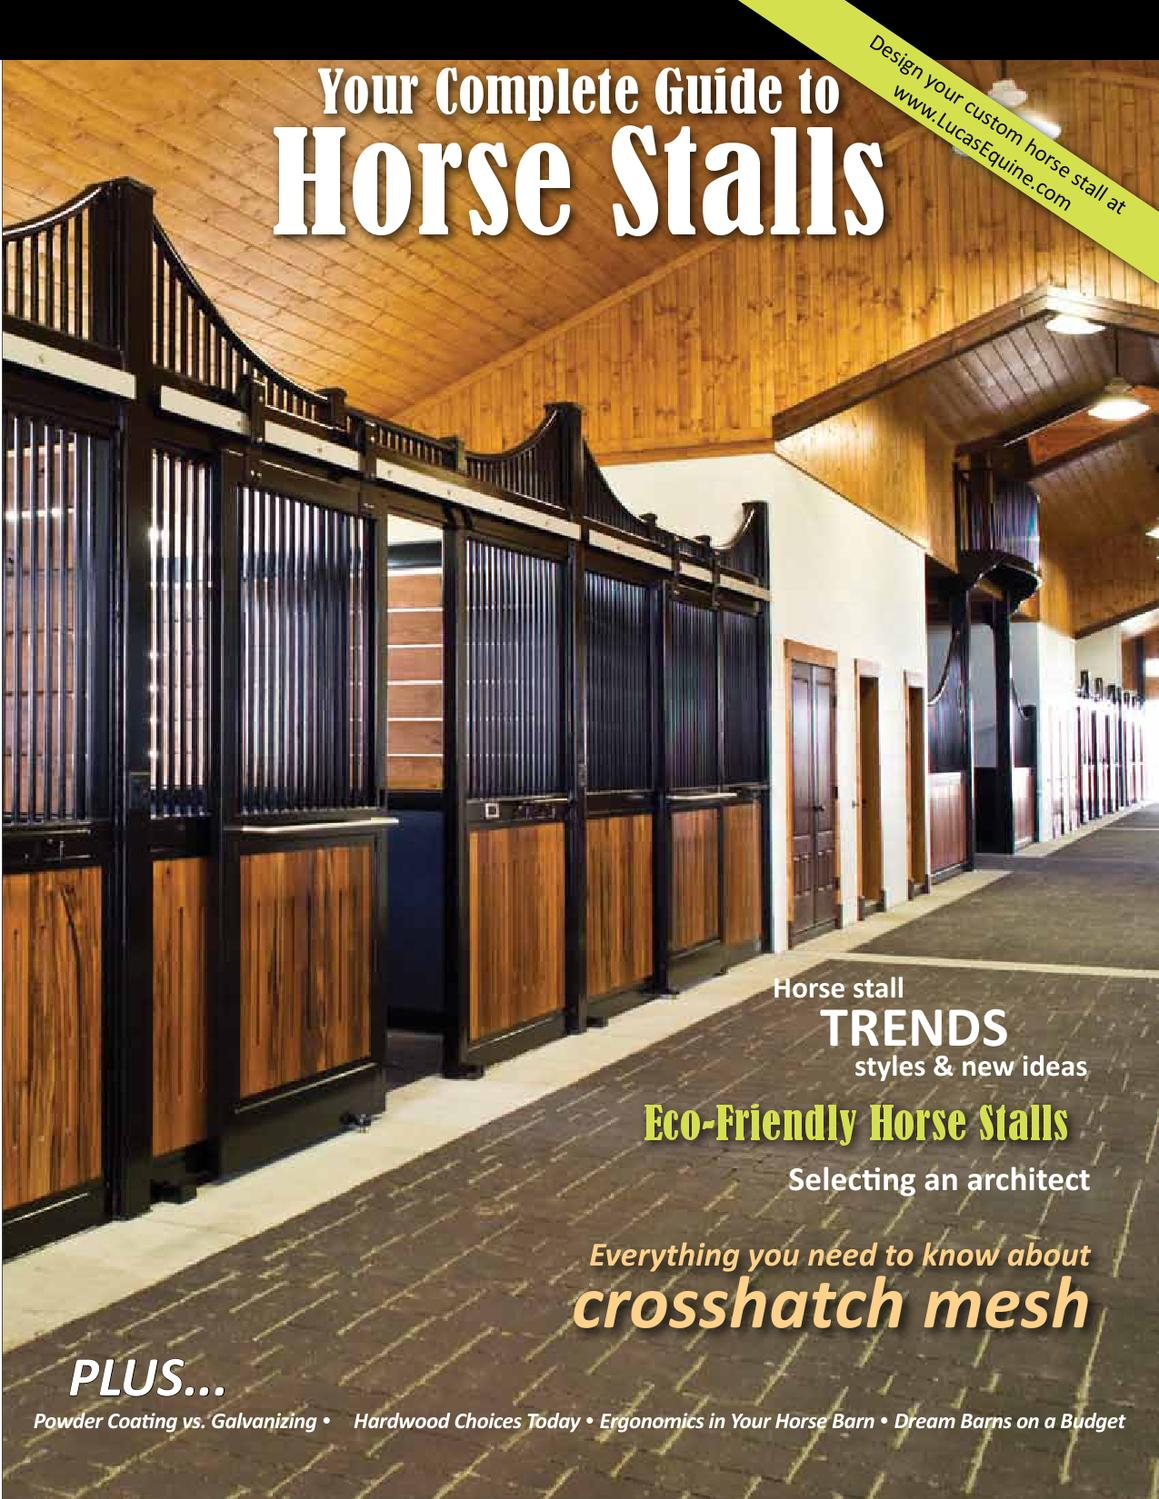 ISSUU - Complete Guide to Horse Stalls by Mandy Gossett